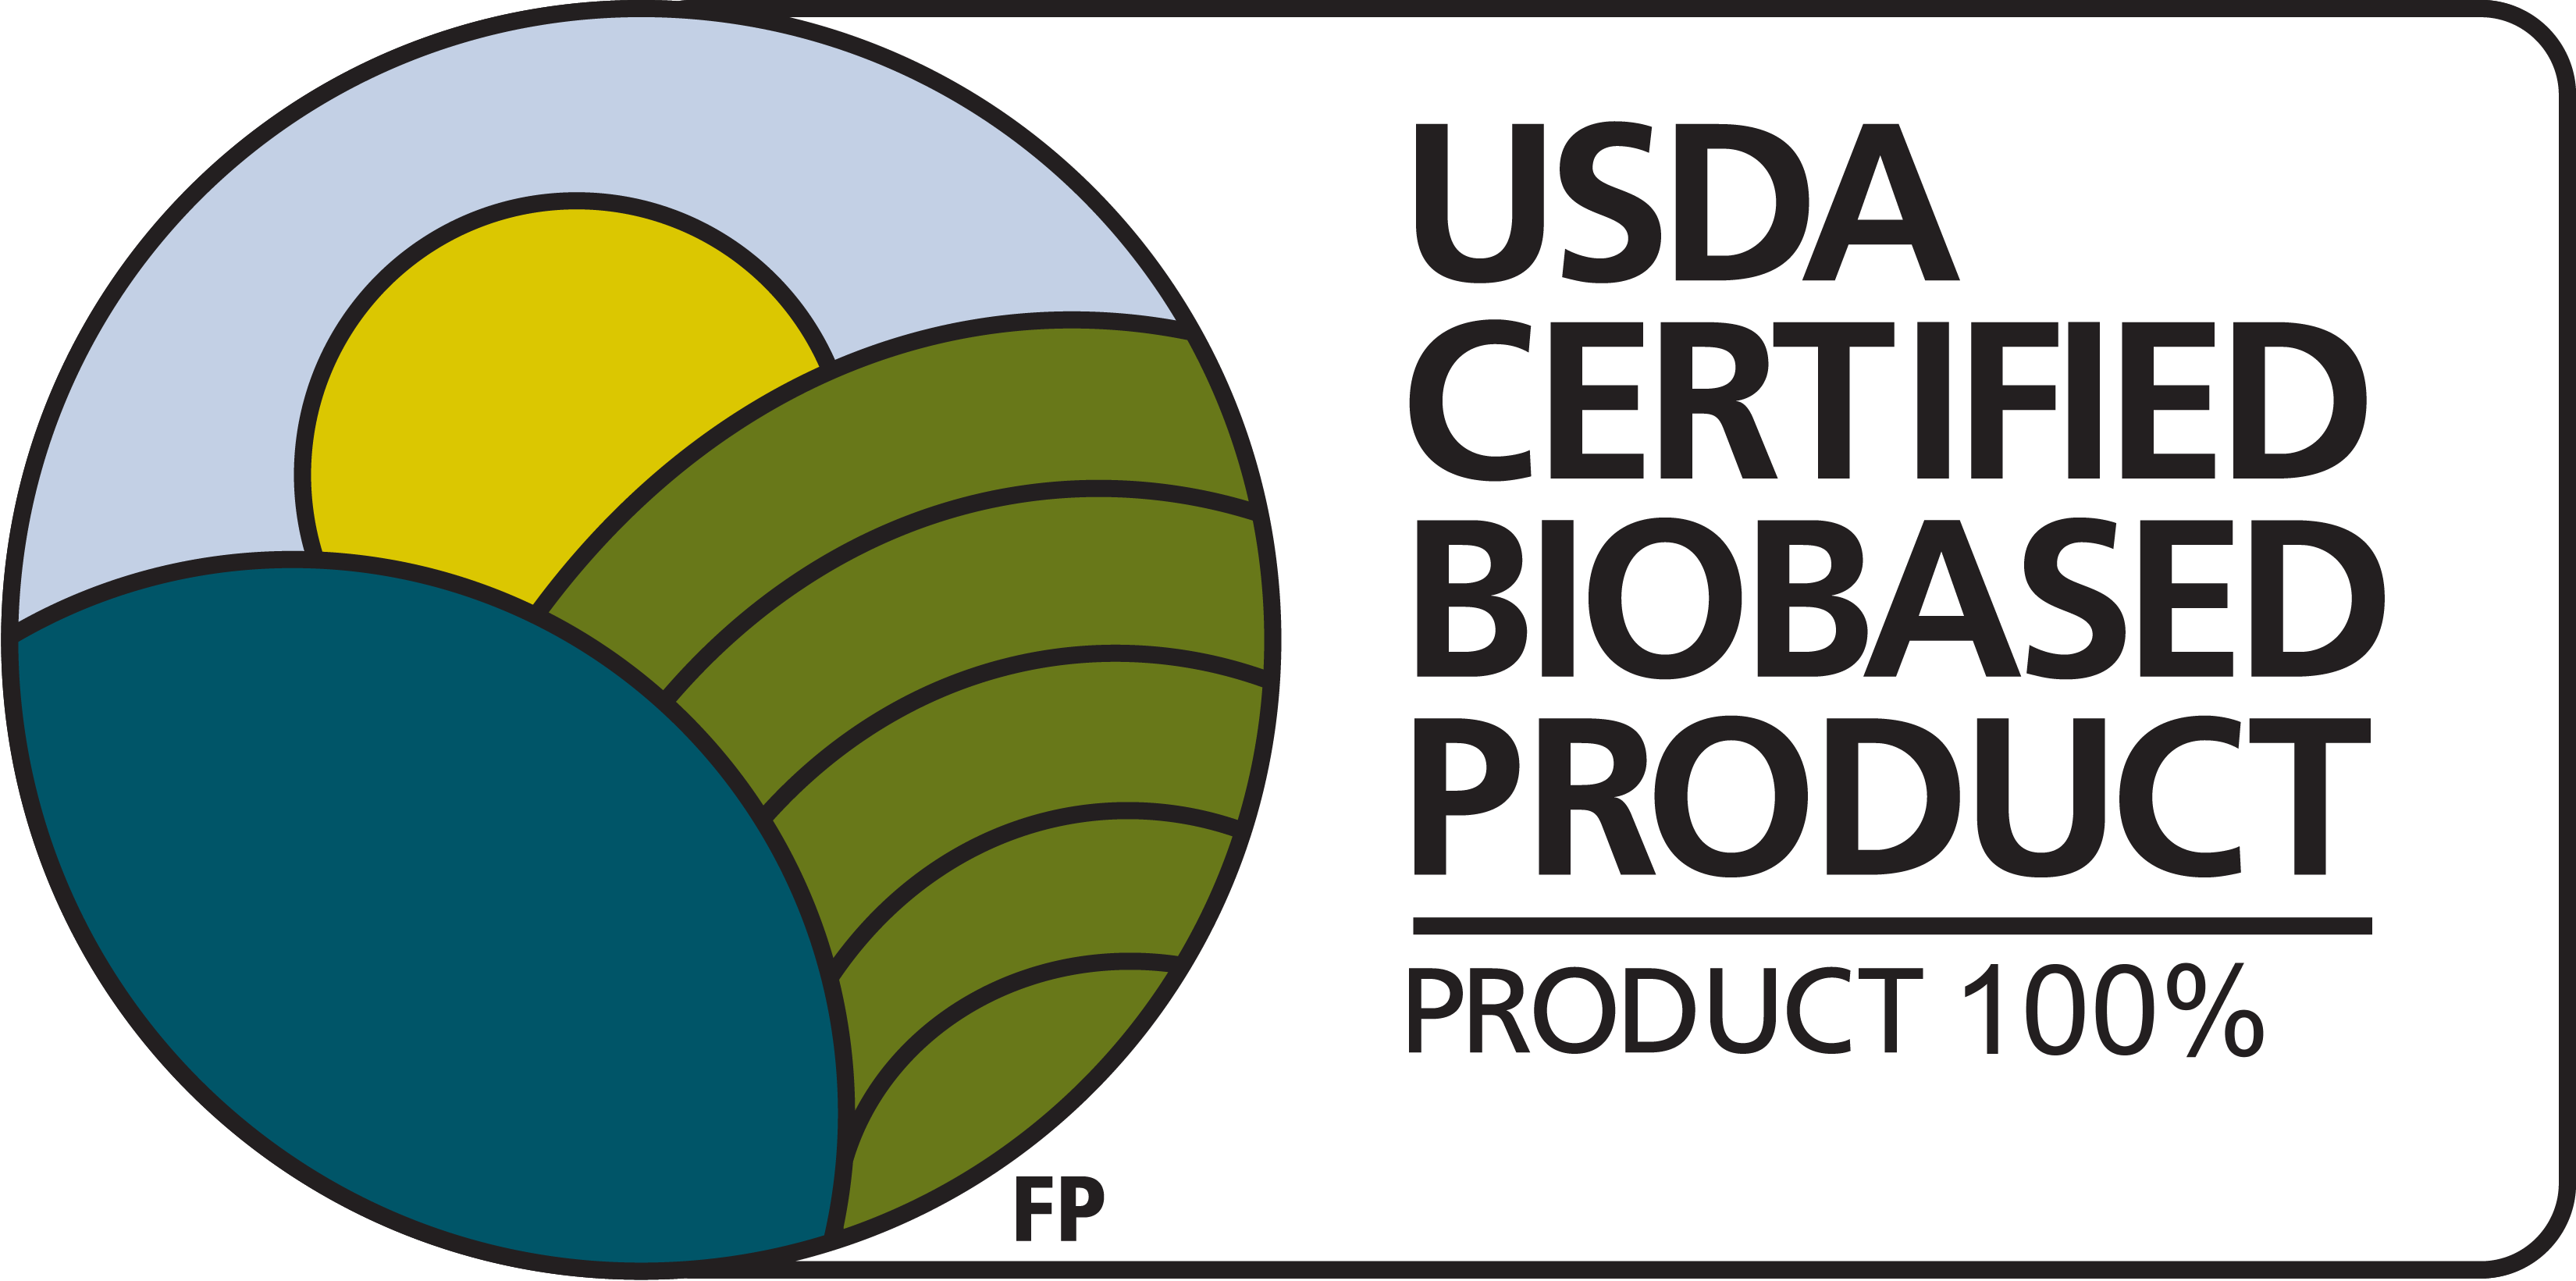 USDA bio based product